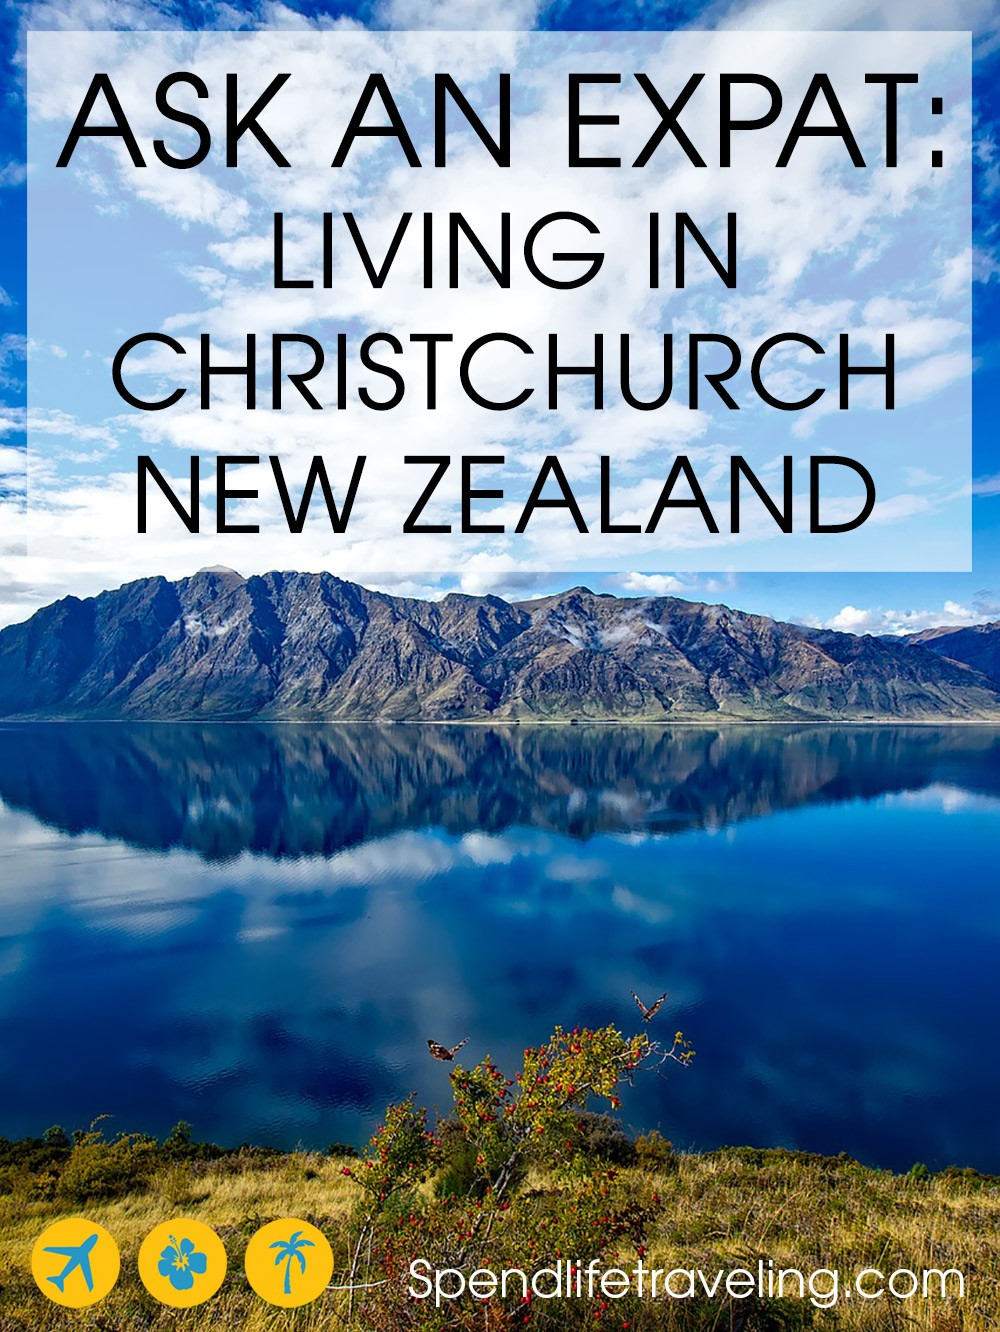 Have you always wondered what it would be like to move to New Zealand? Check out this interview with an expat about moving to and living in #Christchurch, New Zealand. #NewZealand #expat #moveabroad